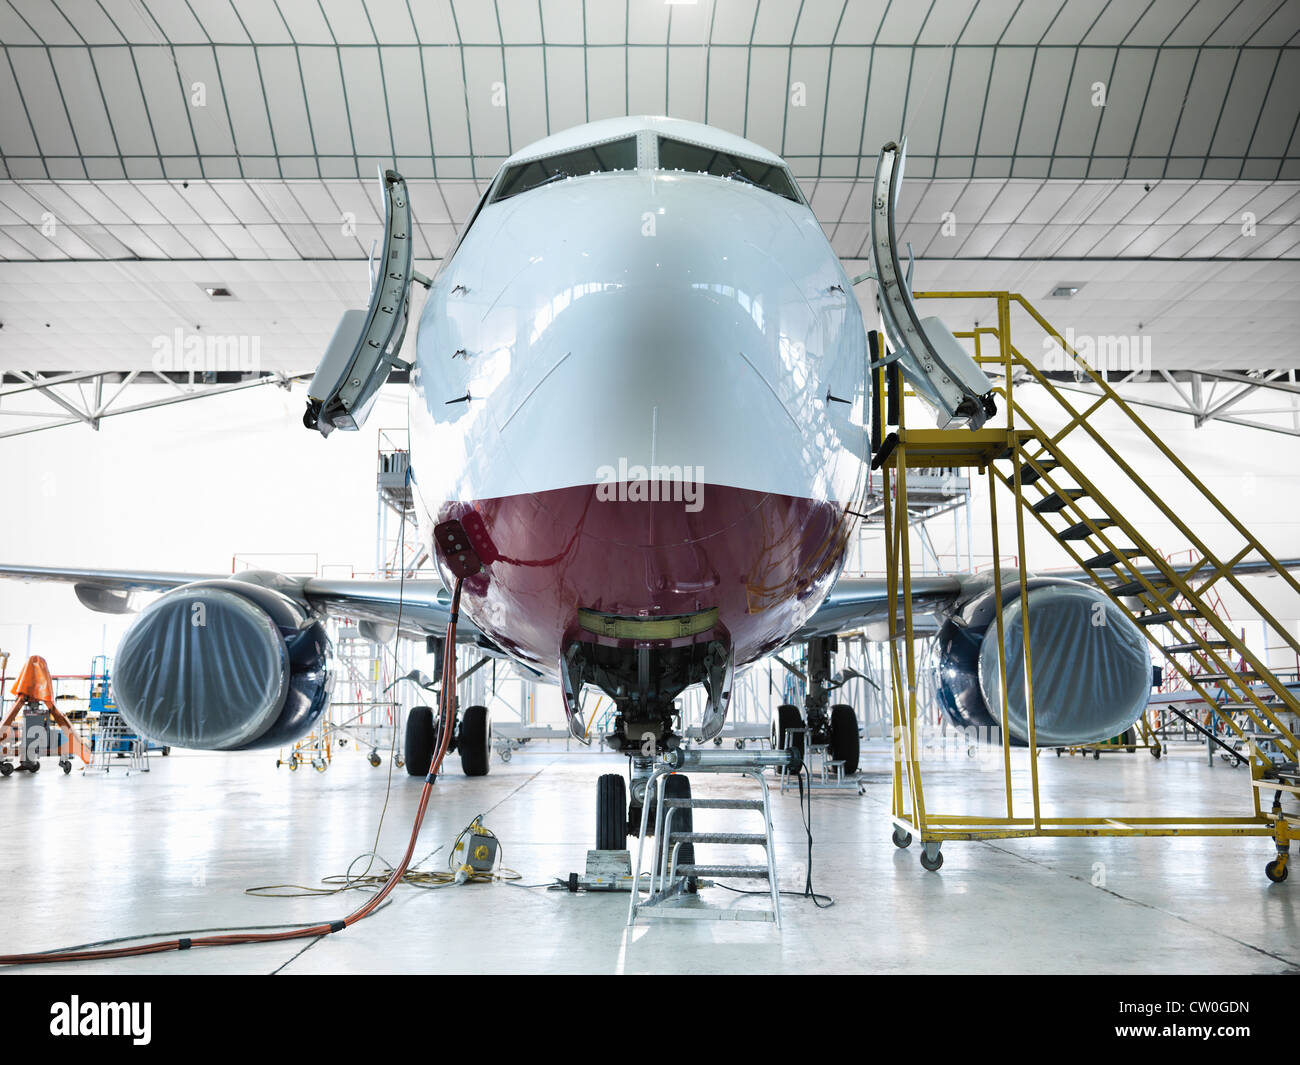 Station d'avion dans le hangar Photo Stock